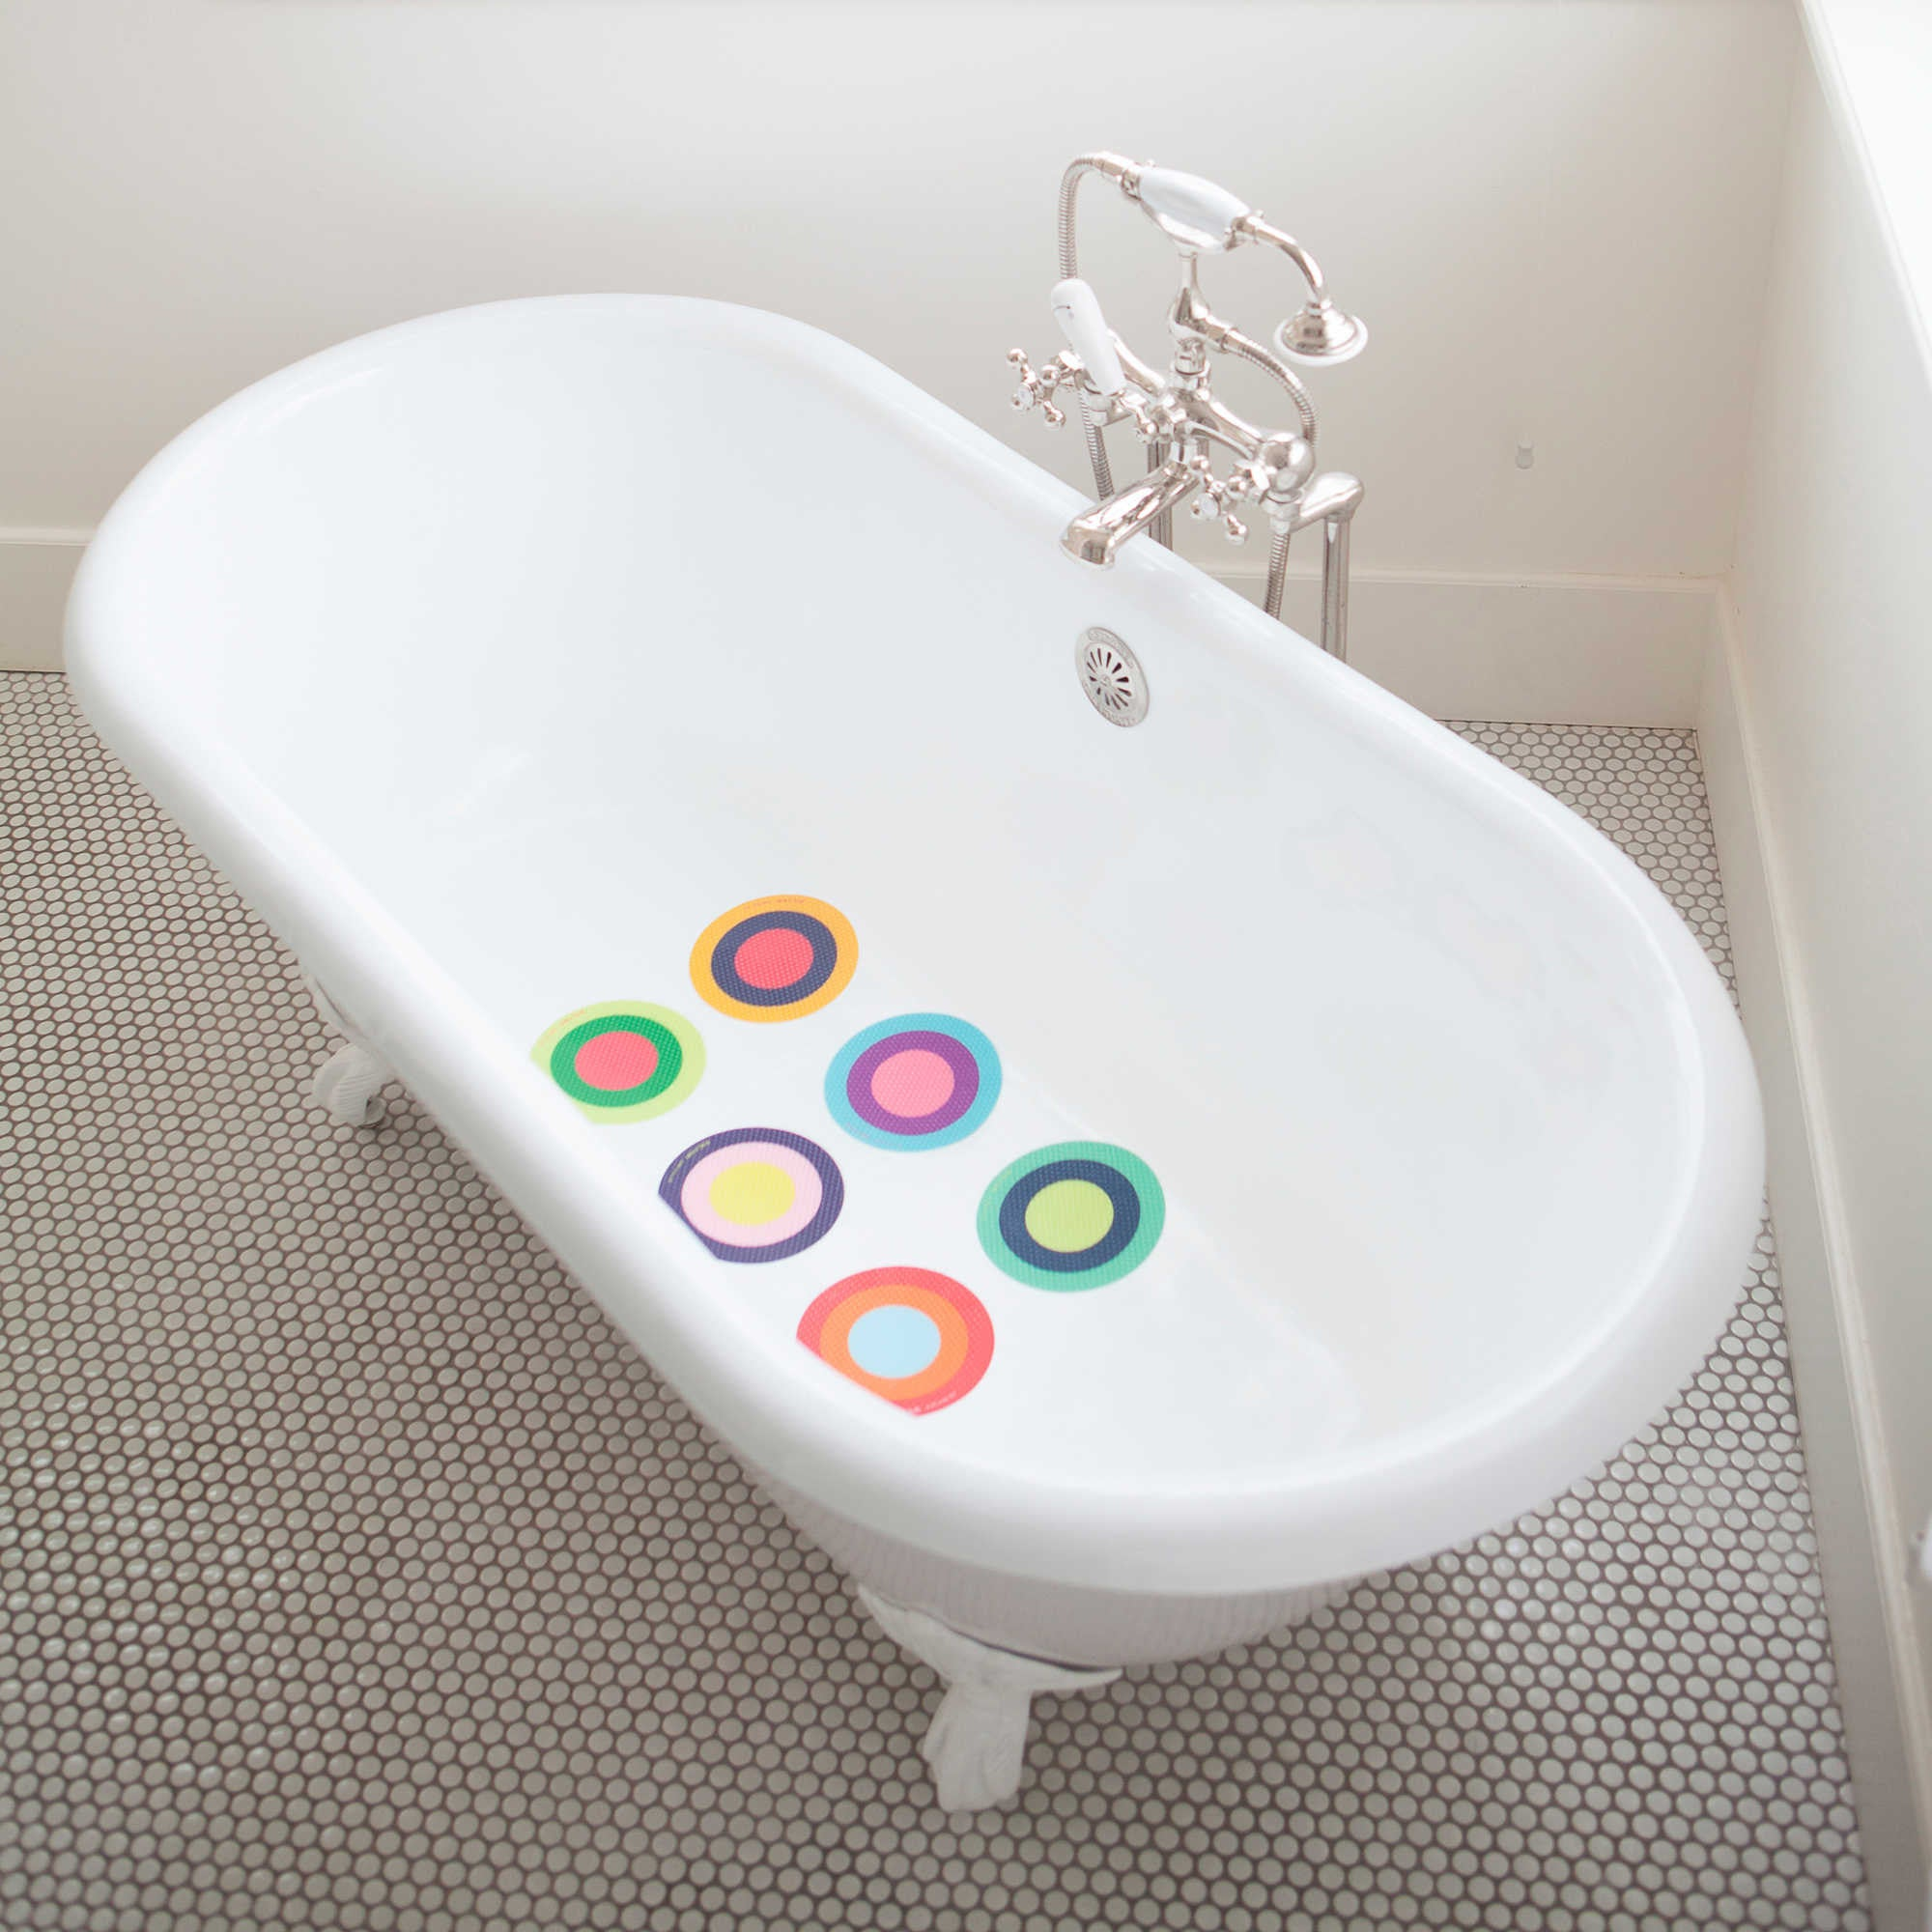 bathtub blooming with baby lotus bath seat tub in safety sink yellow